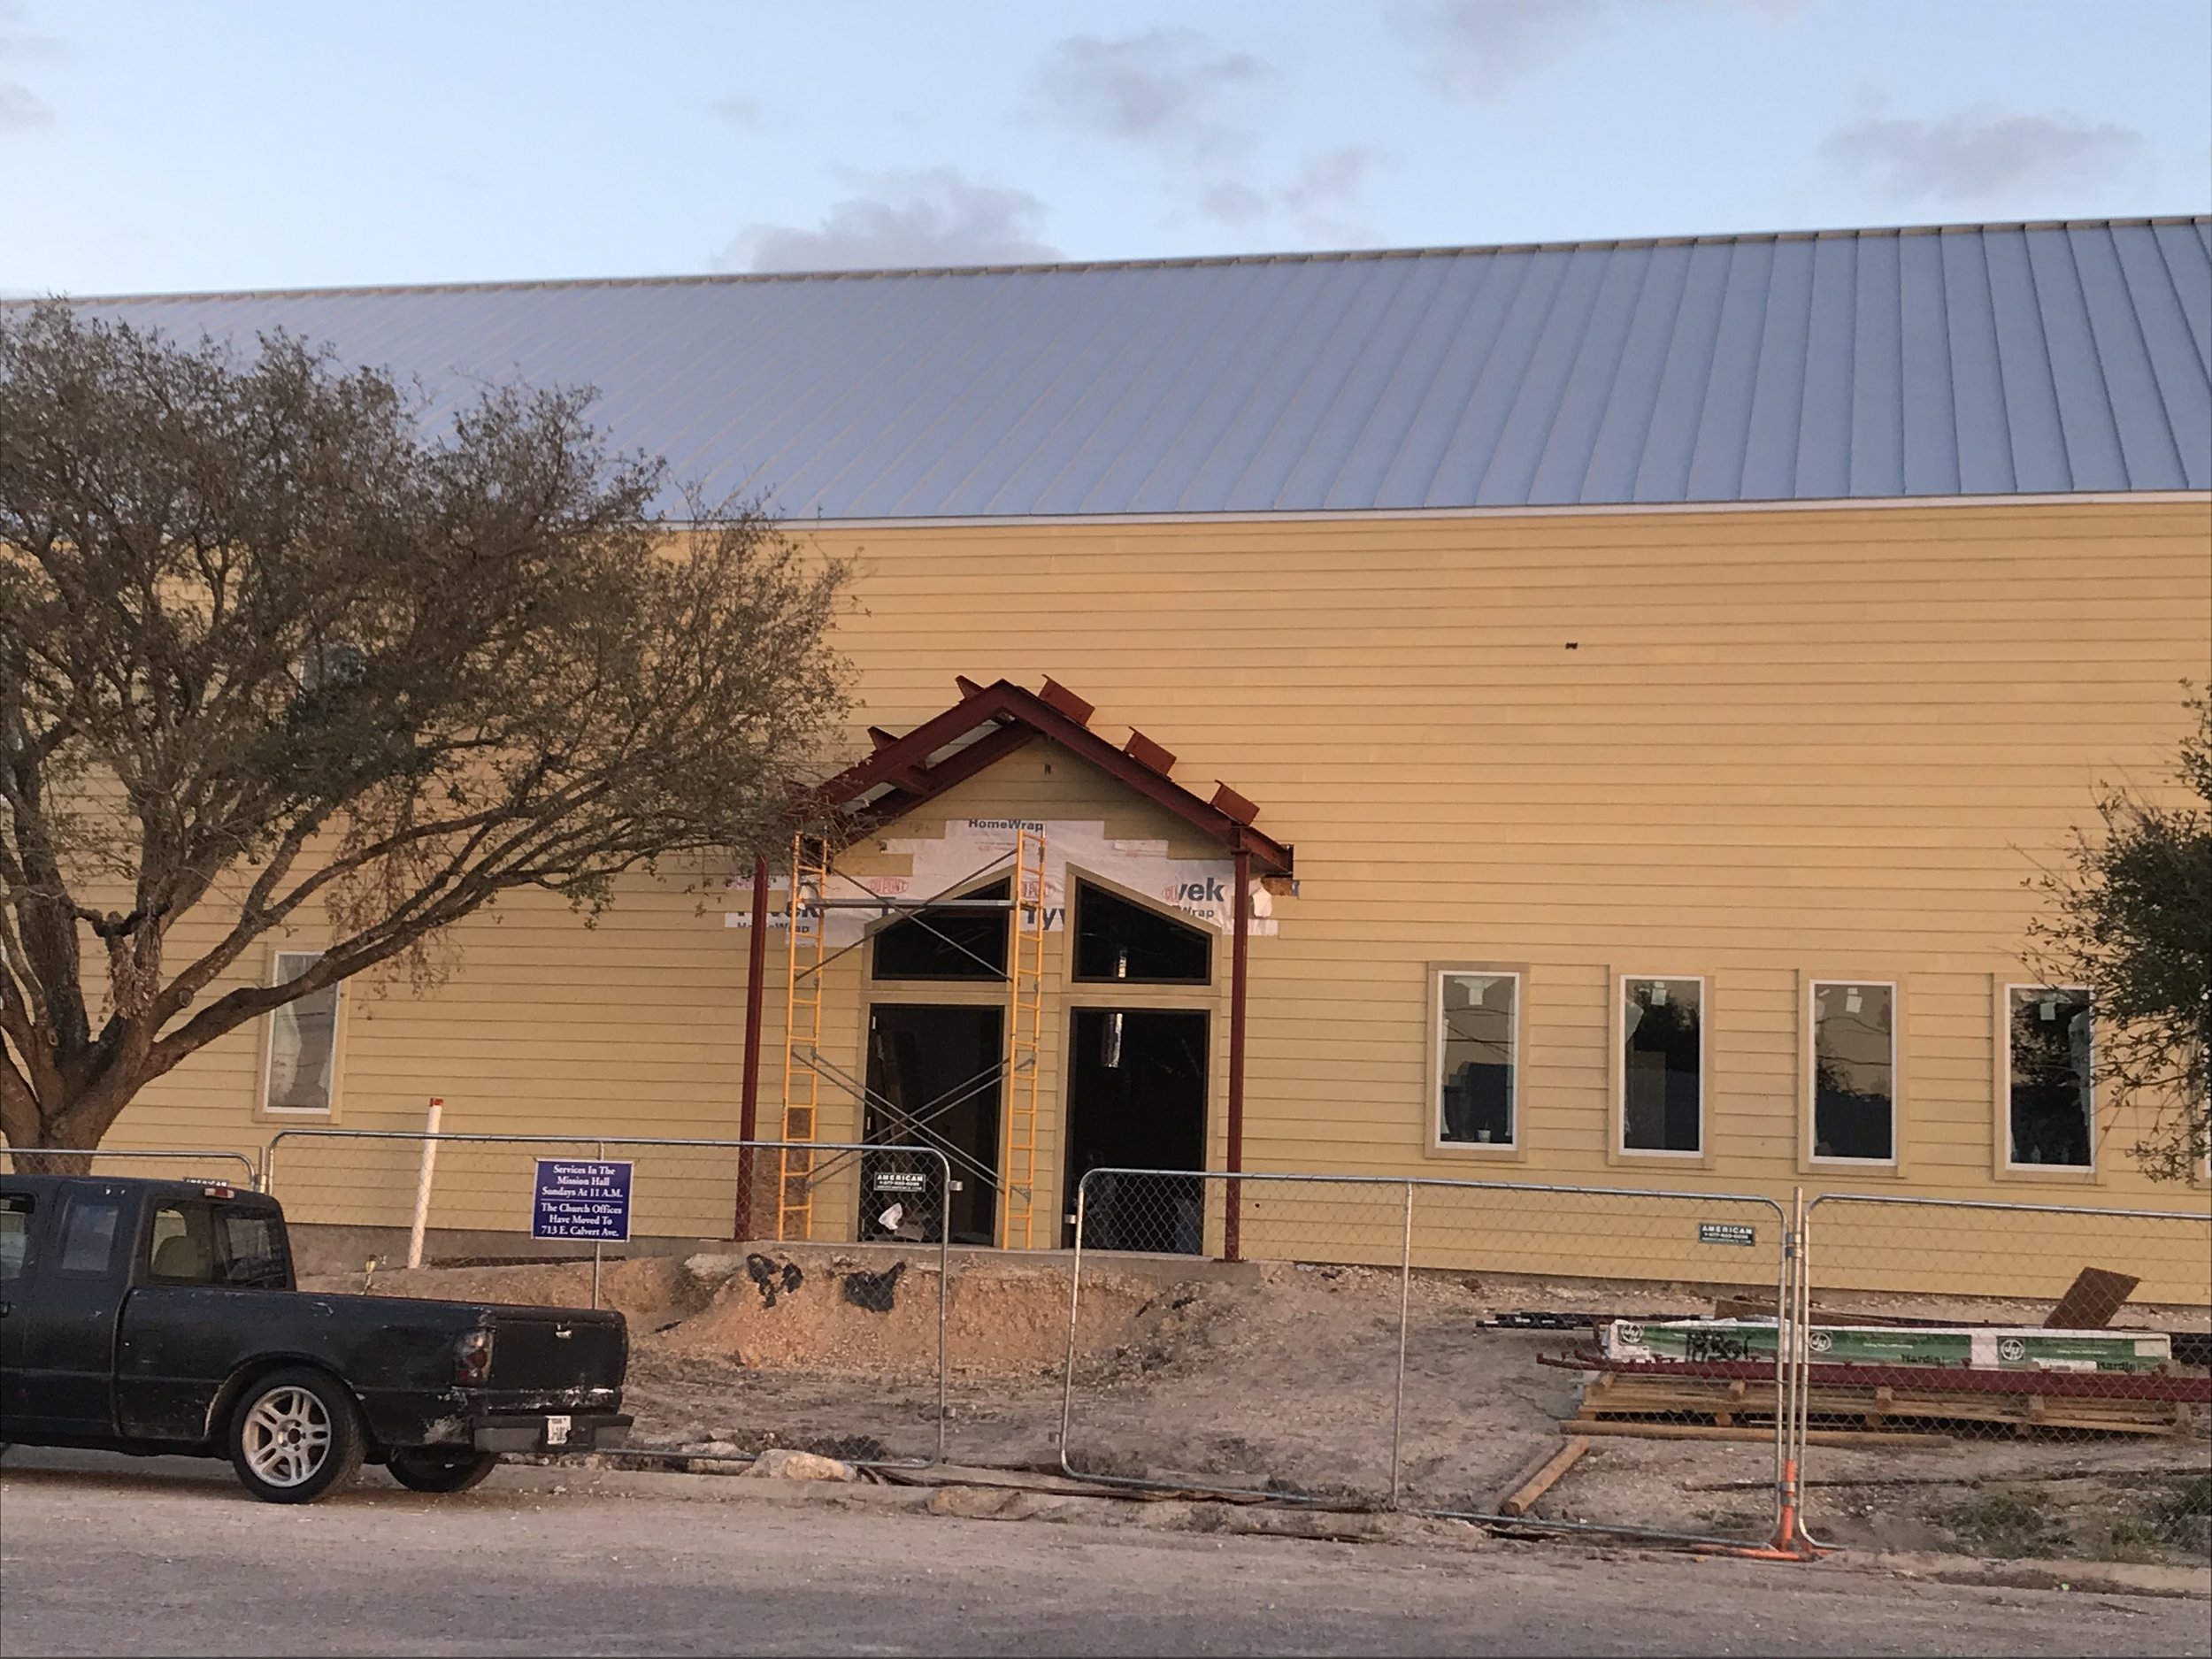 Almost all of the siding is up, and the awning frameworks for the entrances are in place!